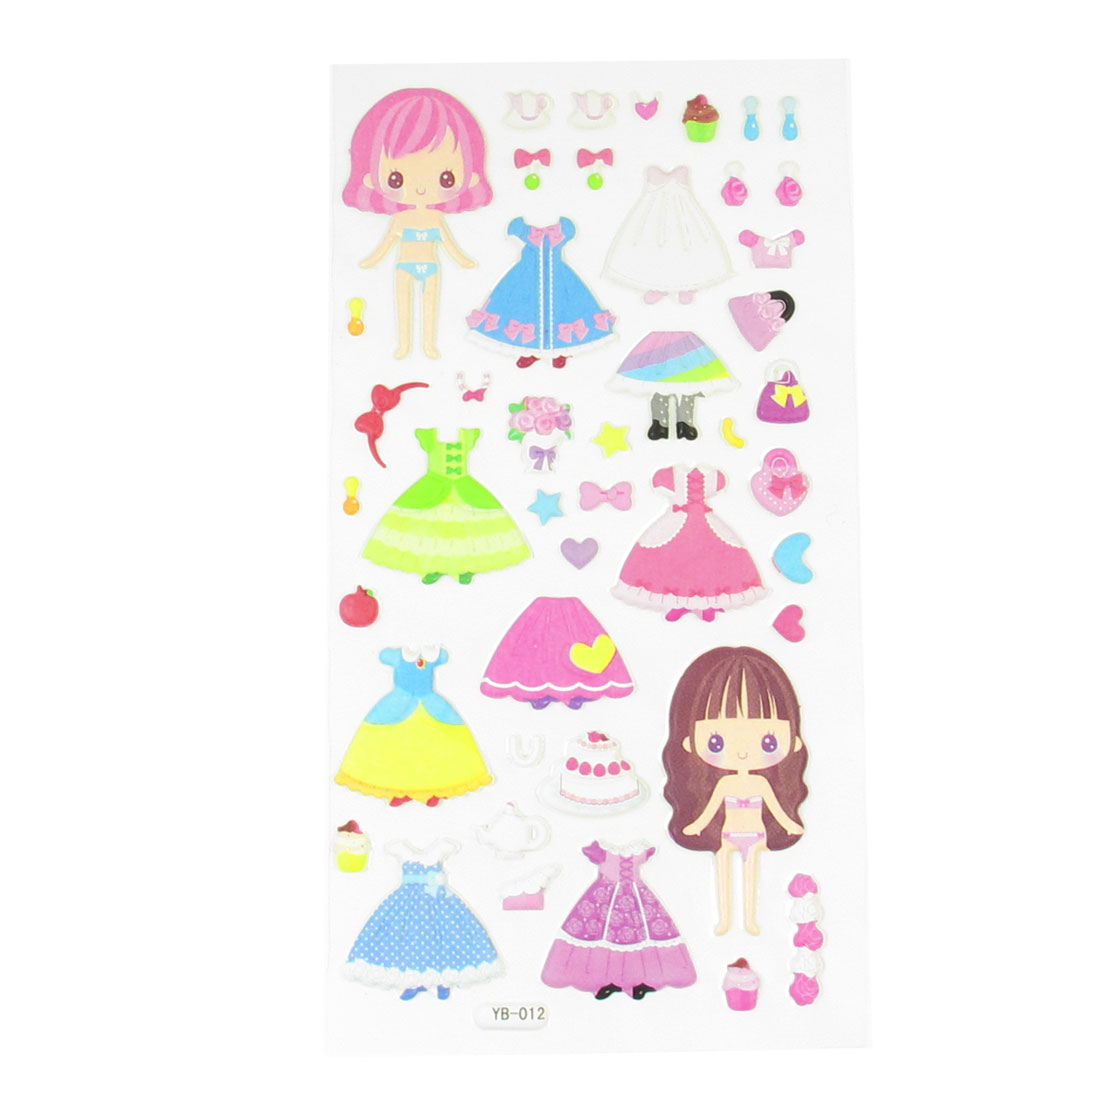 Baby Room Wall Girls Dolls Skirt Pattern Crafts Sponge Puffy Sticker Decal